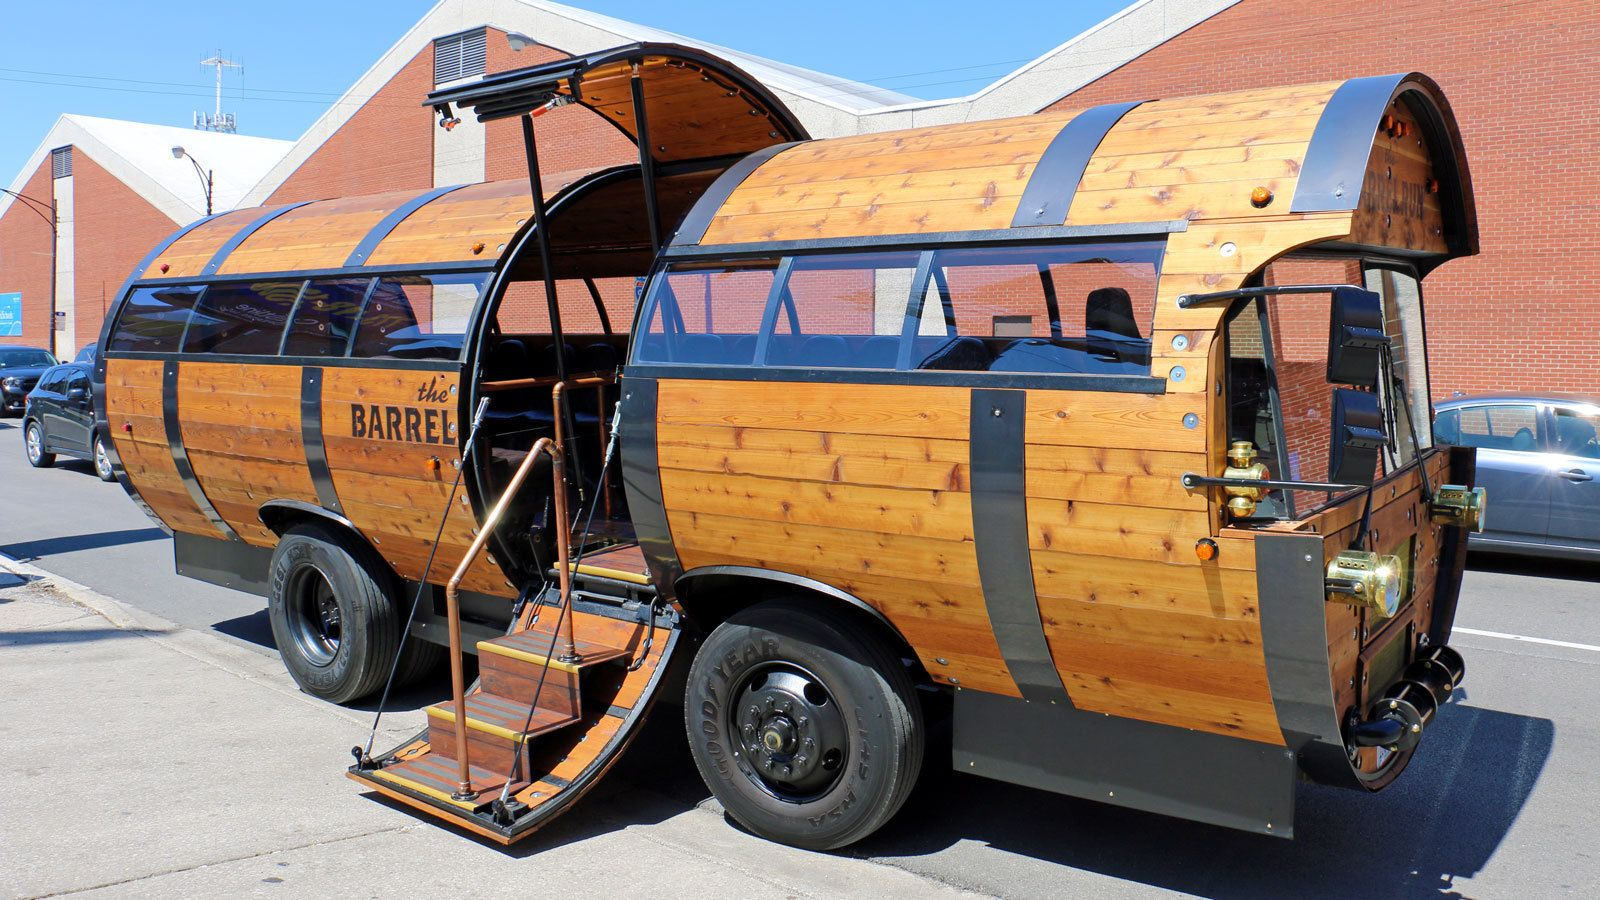 Barrel Bus Craft Brewery Tour with Beer Samples